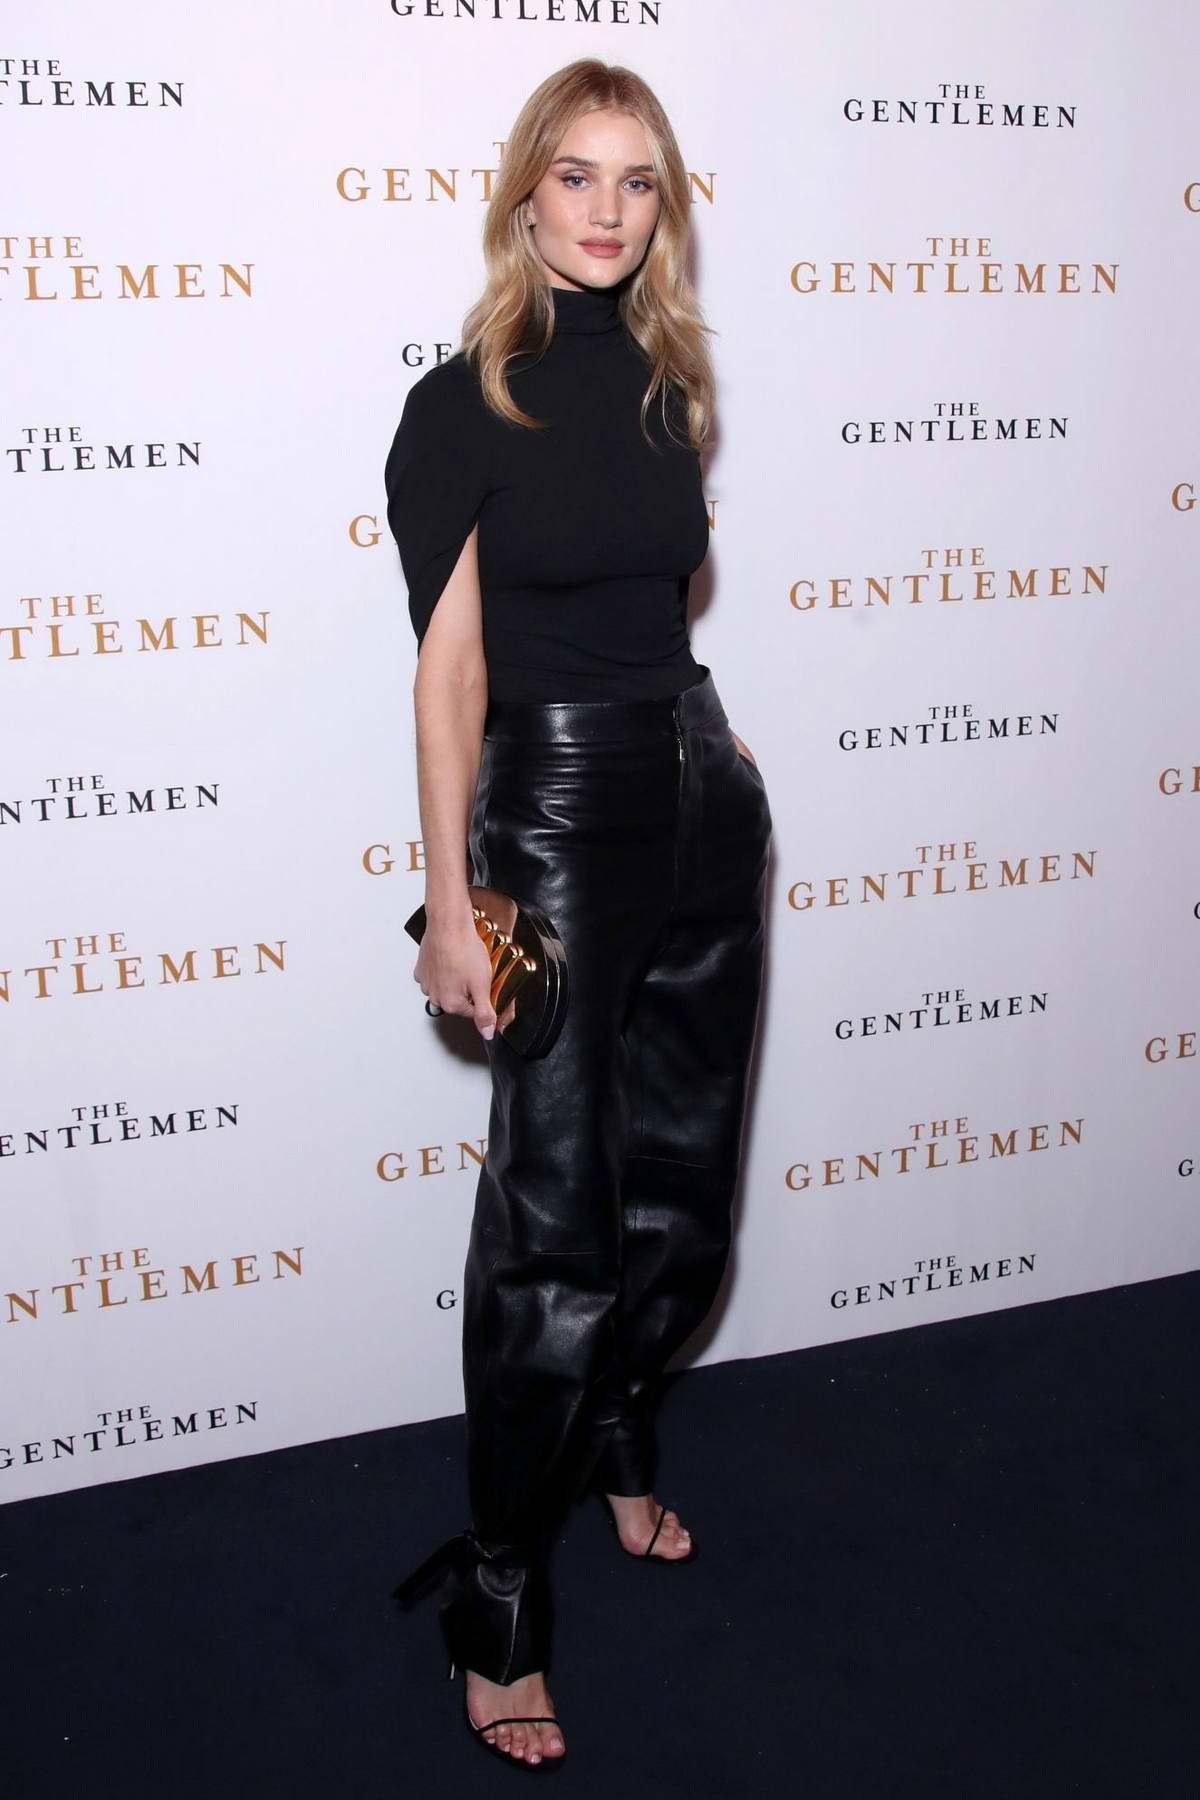 Rosie Huntington-Whiteley attends 'The Gentleman' Special Screening in London, UK